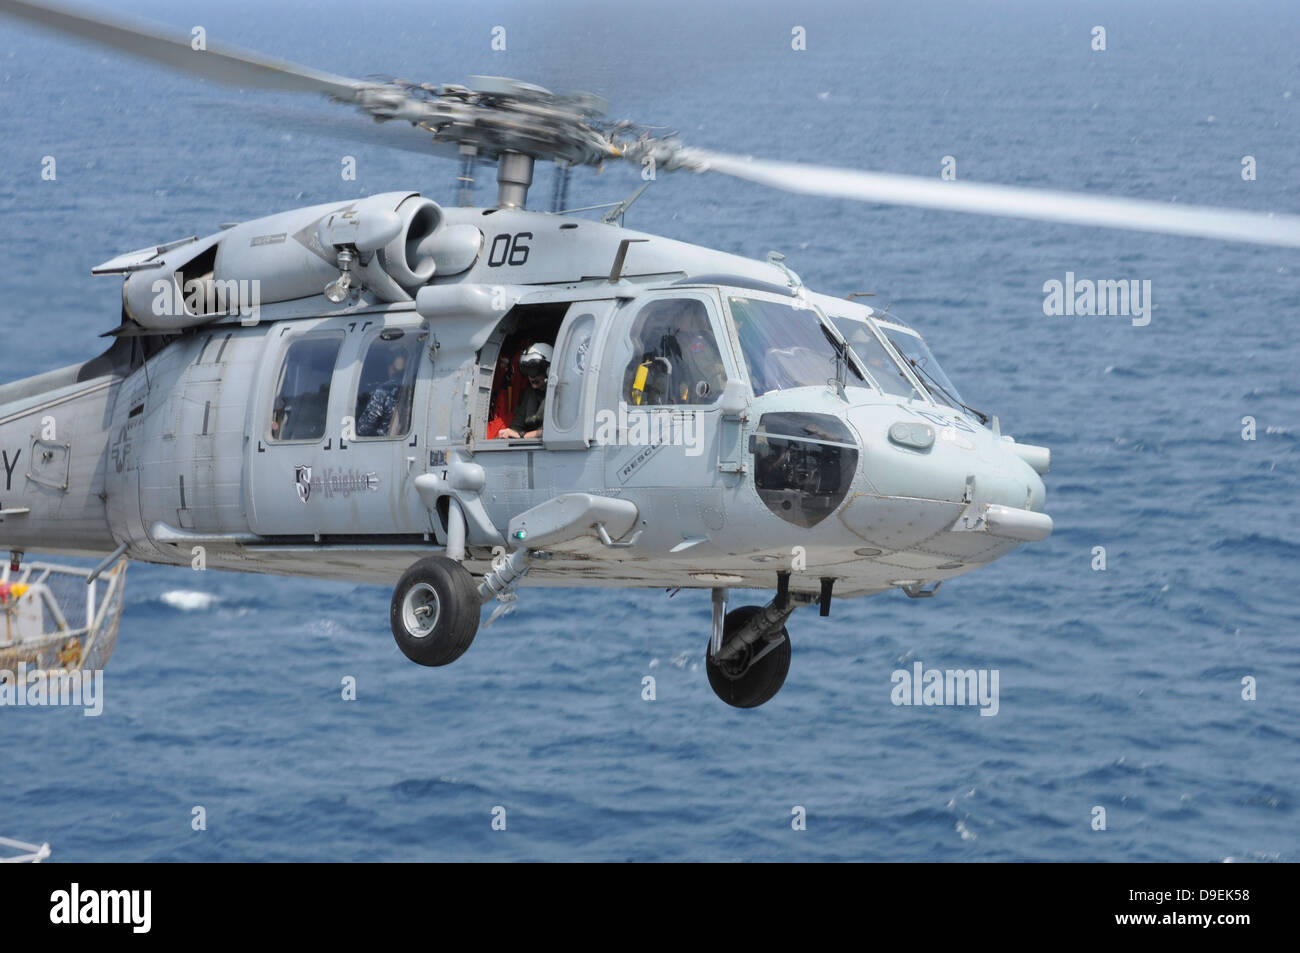 An MH-60S Sea Hawk search and rescue helicopter. - Stock Image